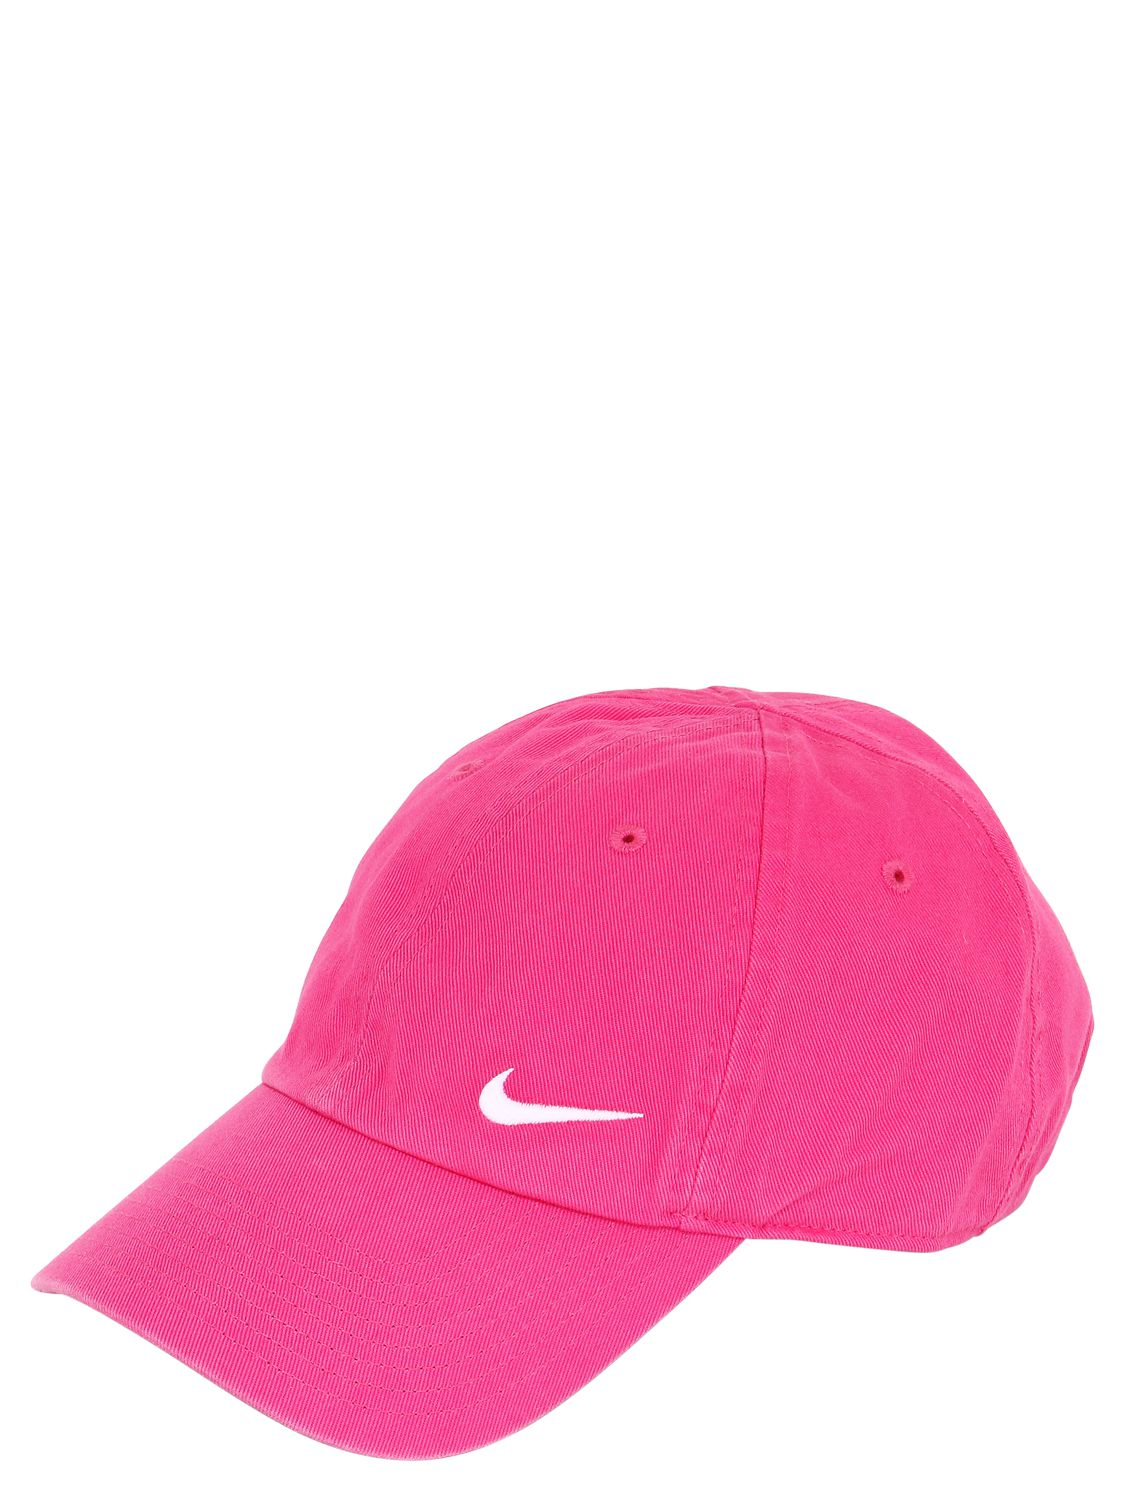 Nike Swoosh Cotton Baseball Hat in Pink - Lyst a7d47d4f2d6